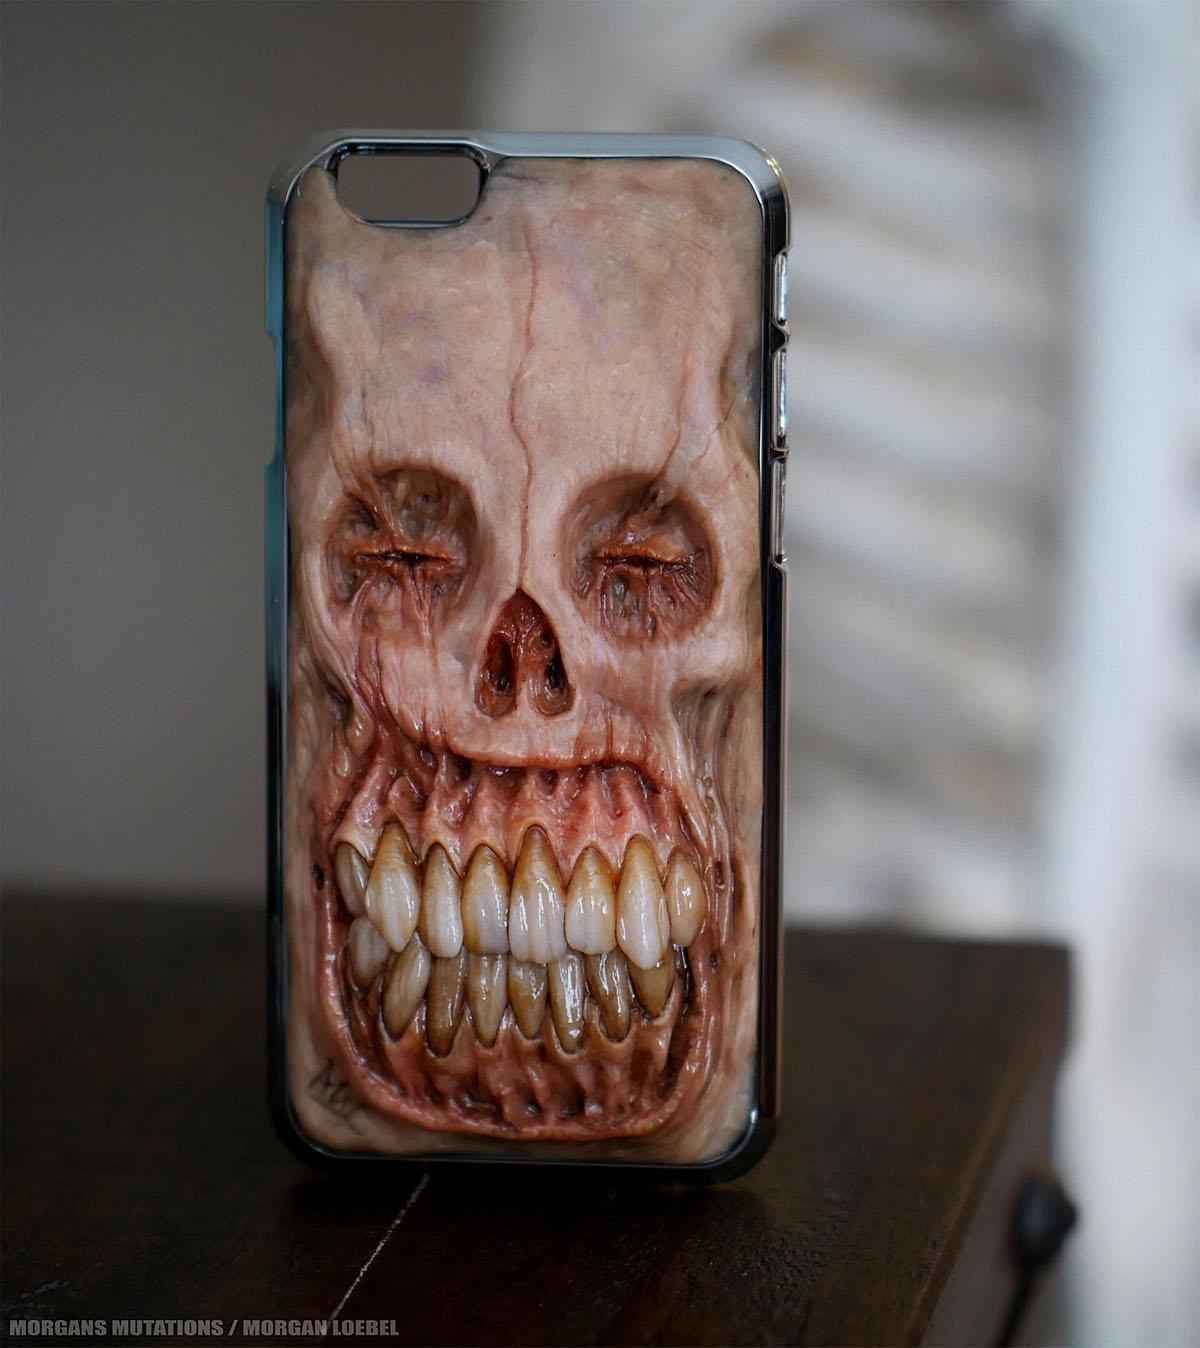 There's every chance that if you're walking down the road with this attached to your ear you're unlikely to be a victim of phone theft. Created by artist and dental tech Morgan Loebel of Kansas, these monstrous phone cases are decorated with hyper-realistic re-creations of crooked, sharp teeth human flesh, gums and terrified eyes. (WENN.com photo)